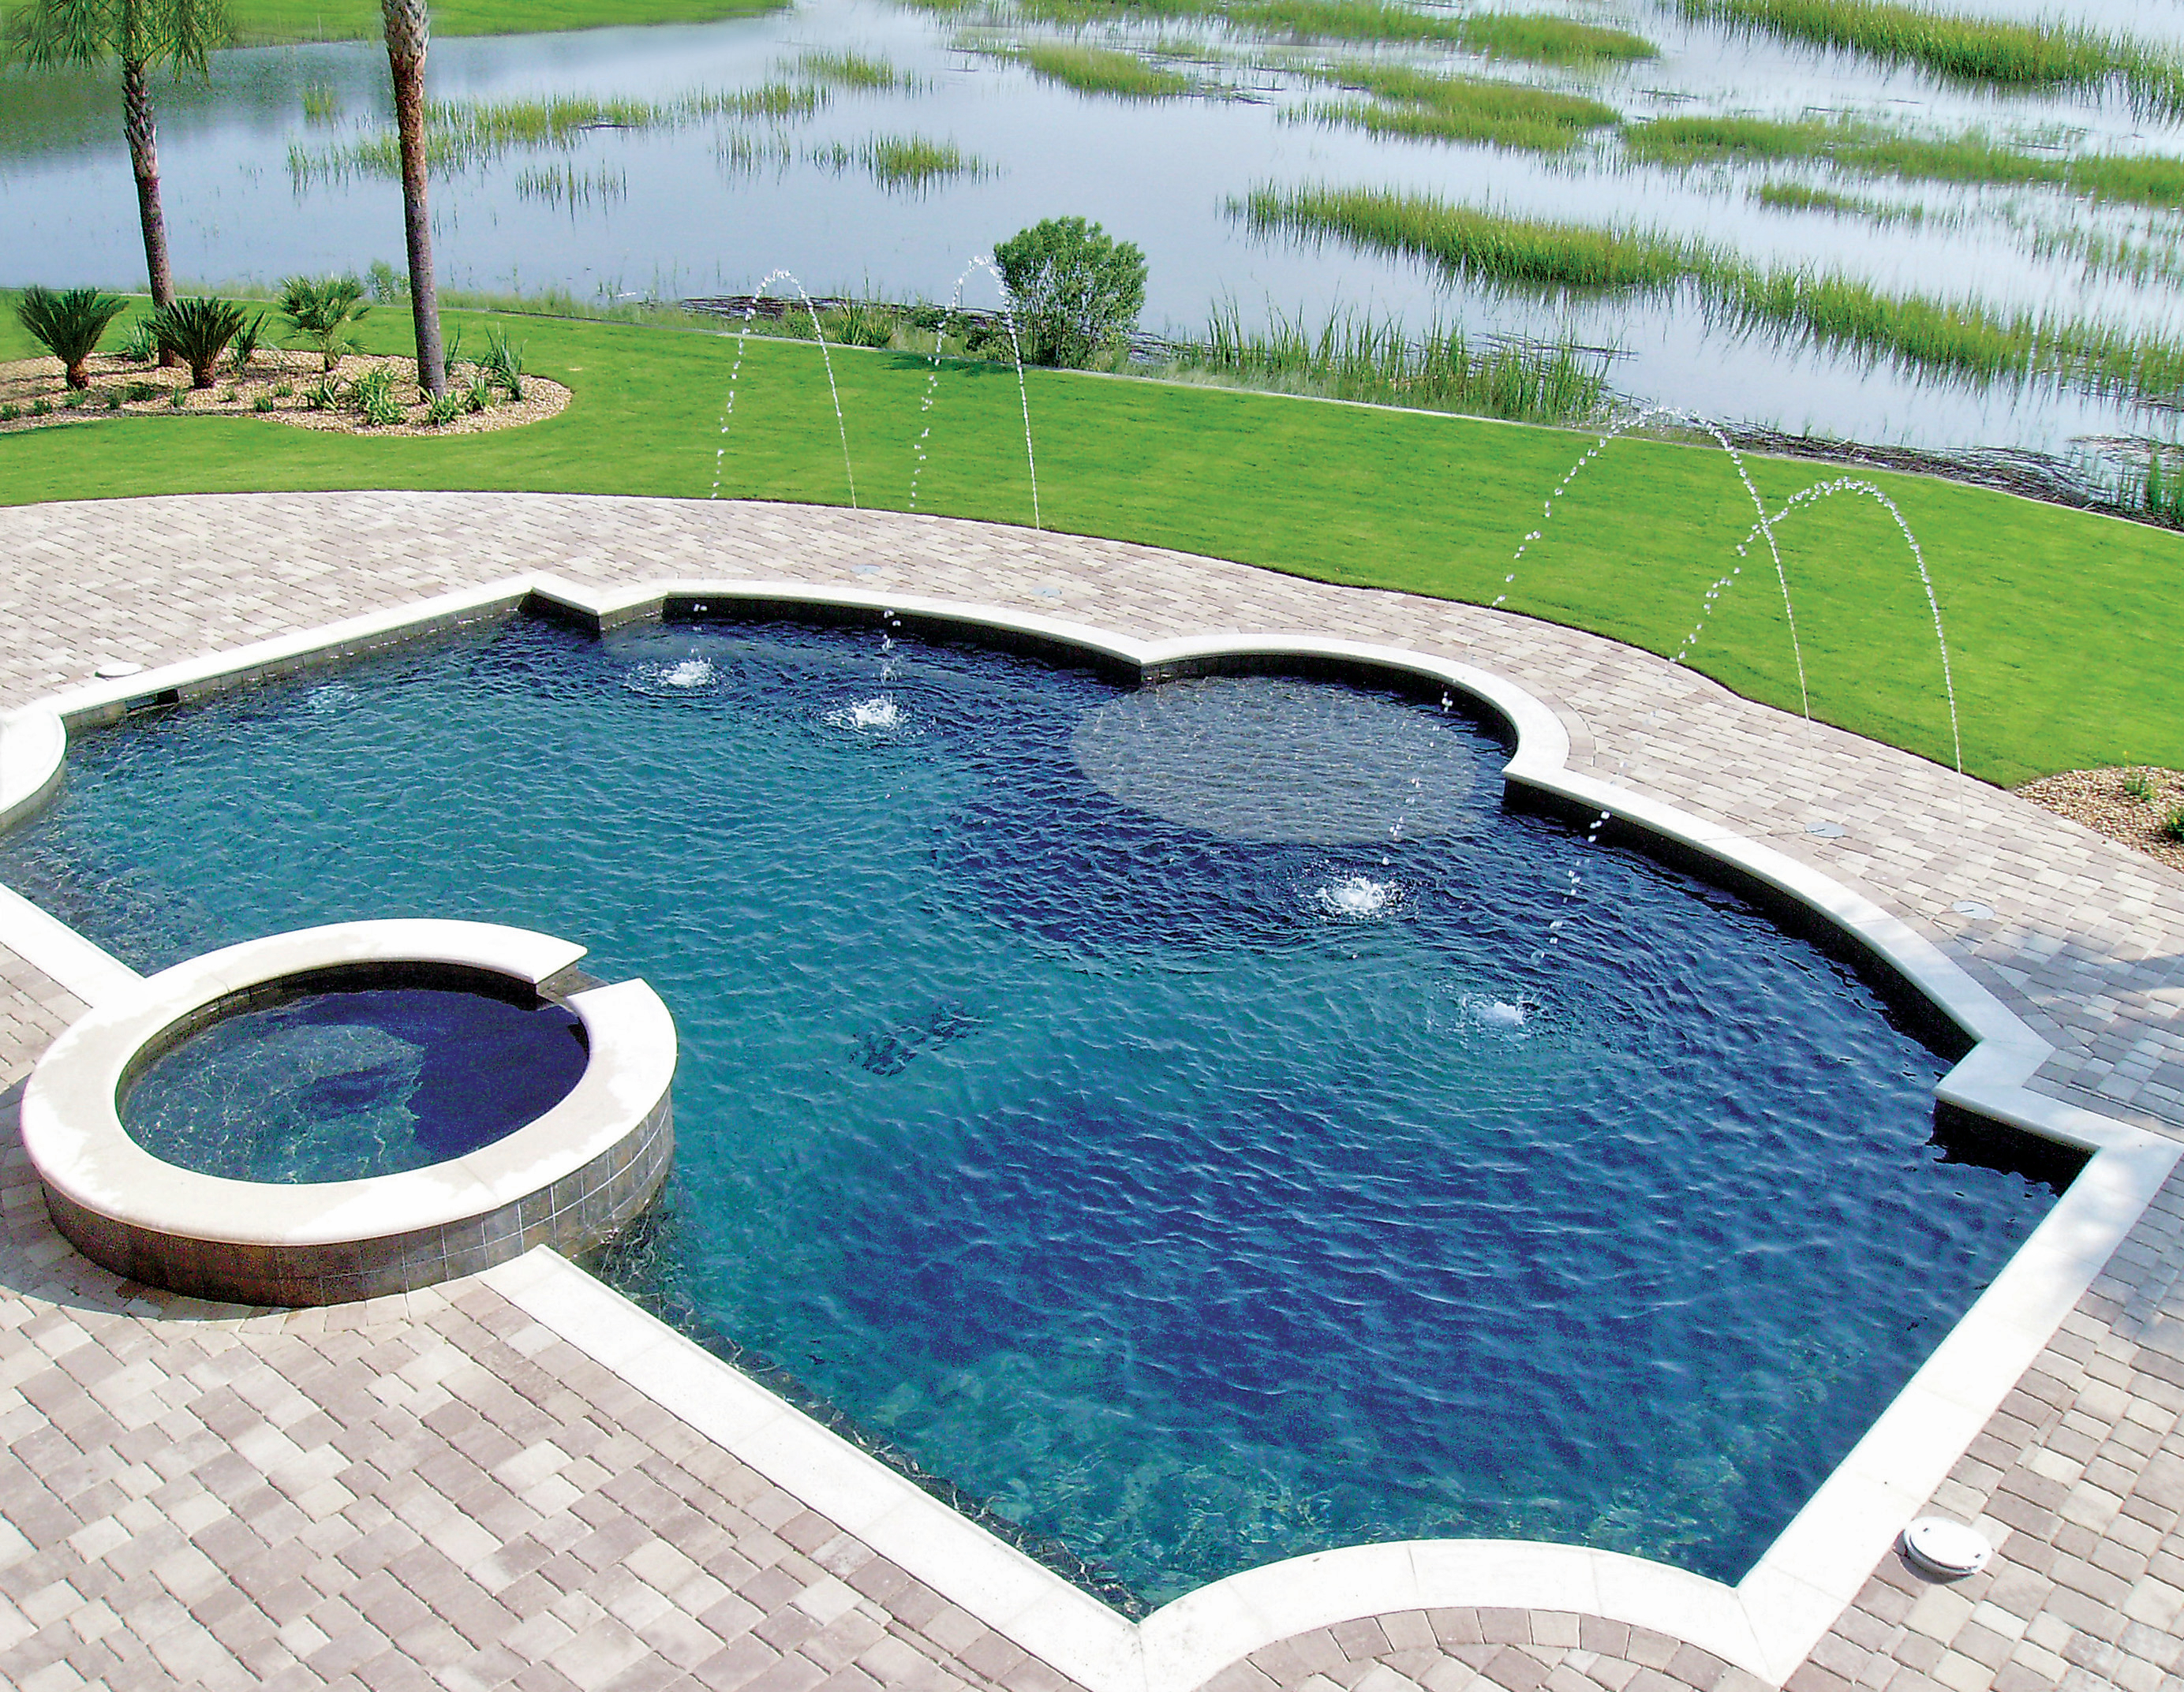 Blue haven pools spas in jacksonville fl 904 620 0 for Pool builders jacksonville